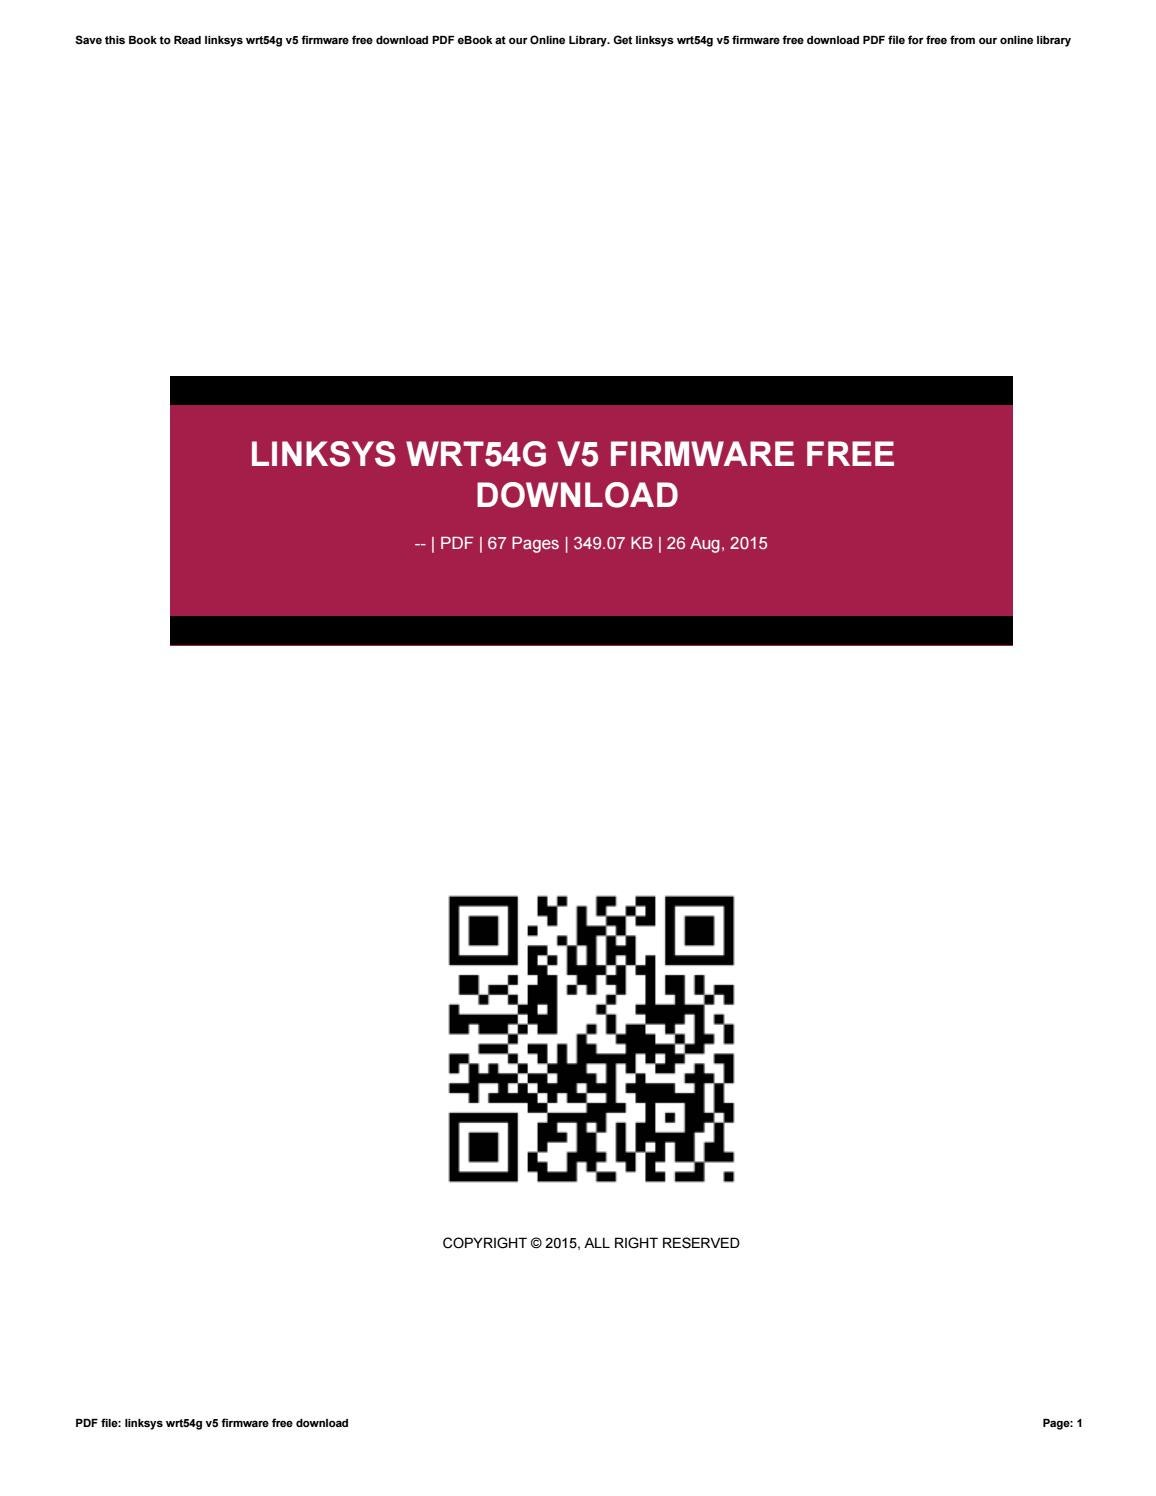 Linksys wrt54g v5 firmware free download by zhcne34 - issuu